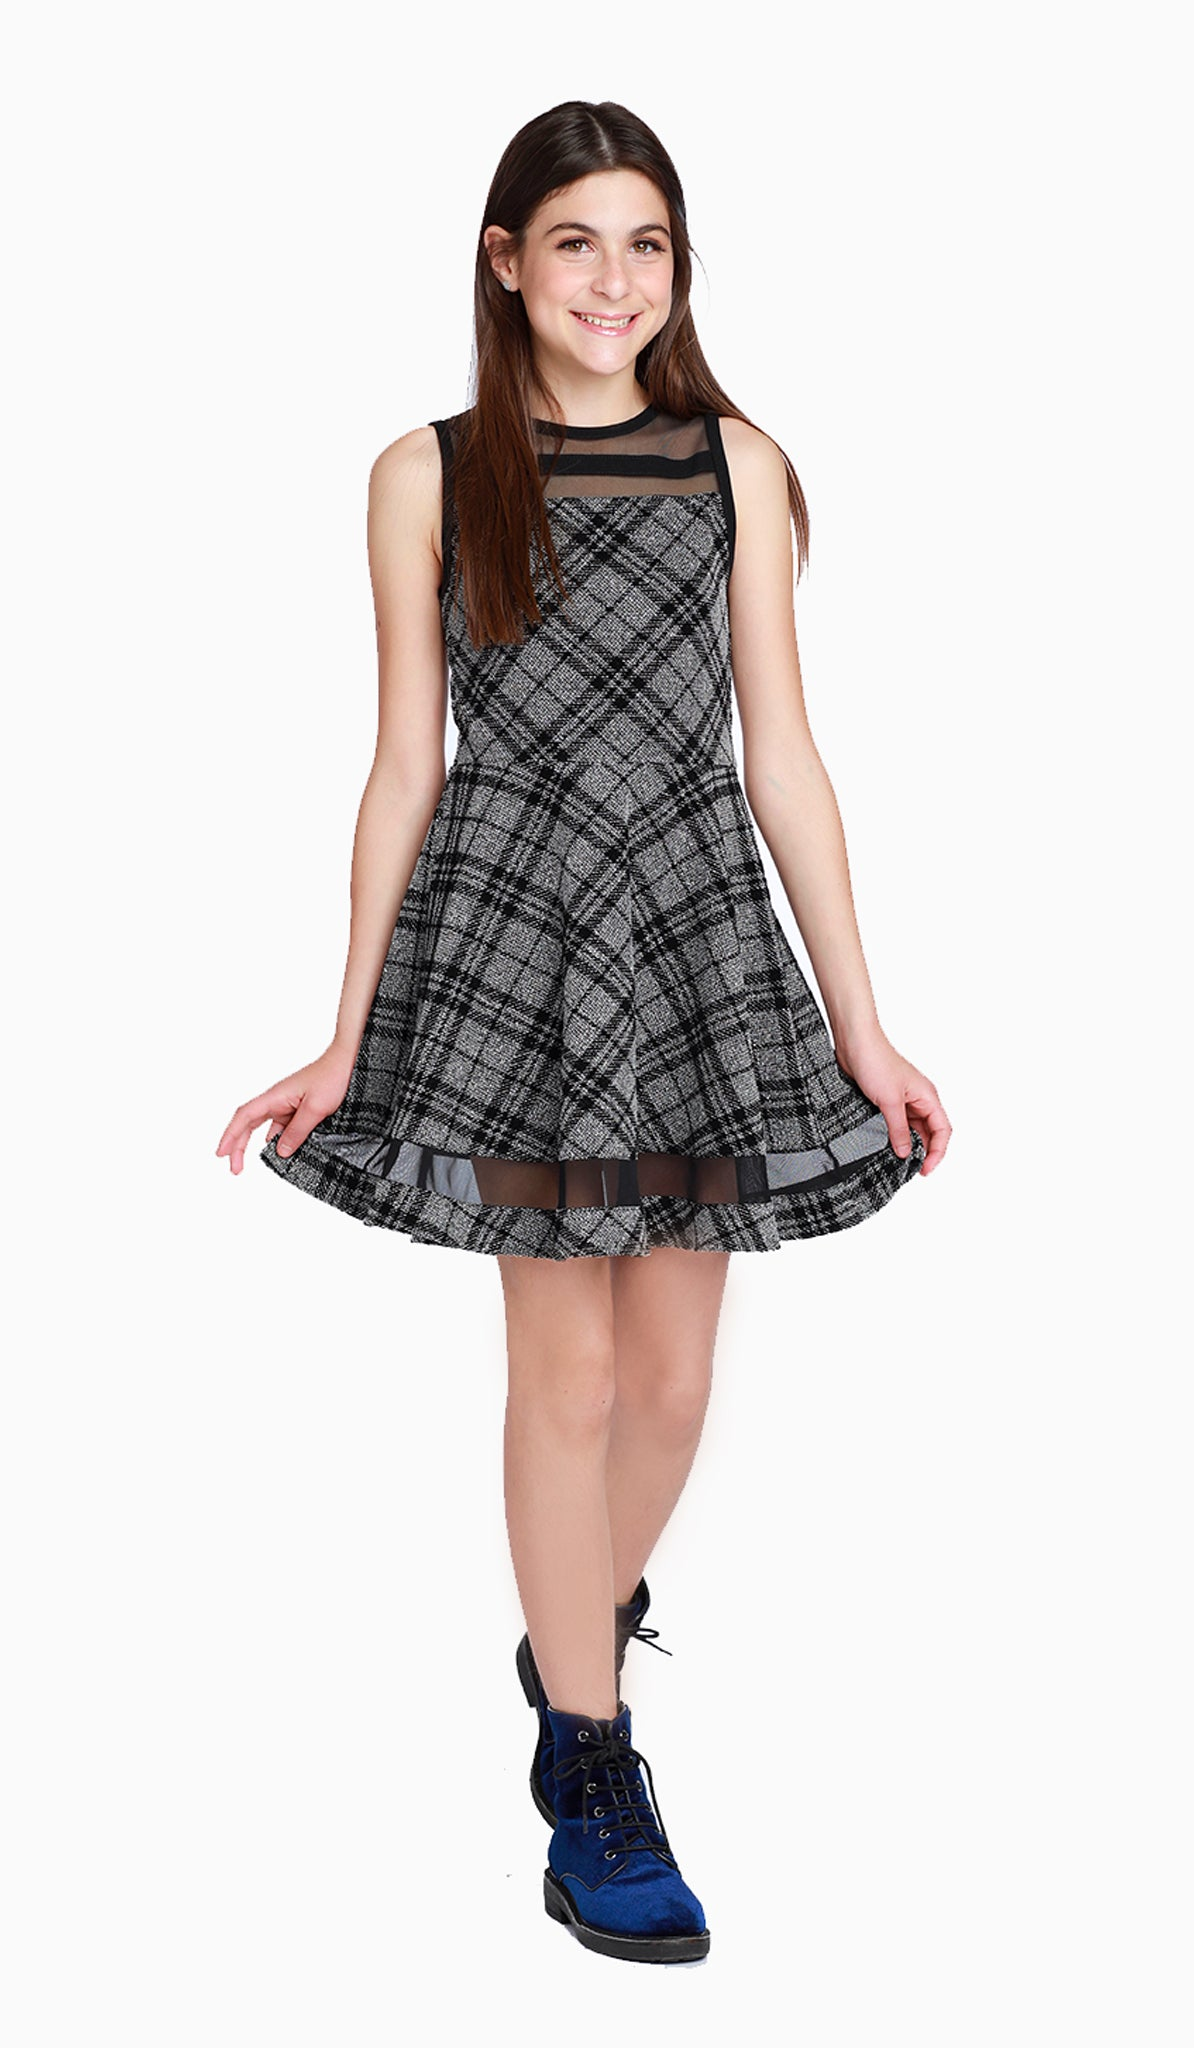 THE EMERSON DRESS - Sallymiller.com - [variant title] - | Event & Party Dresses for Tween Girls & Juniors | Weddings Dresses, Bat Mitzvah Dresses, Sweet Sixteen Dresses, Graduation Dresses, Birthday Party Dresses, Bar Mitzvah Dresses, Cotillion Dresses